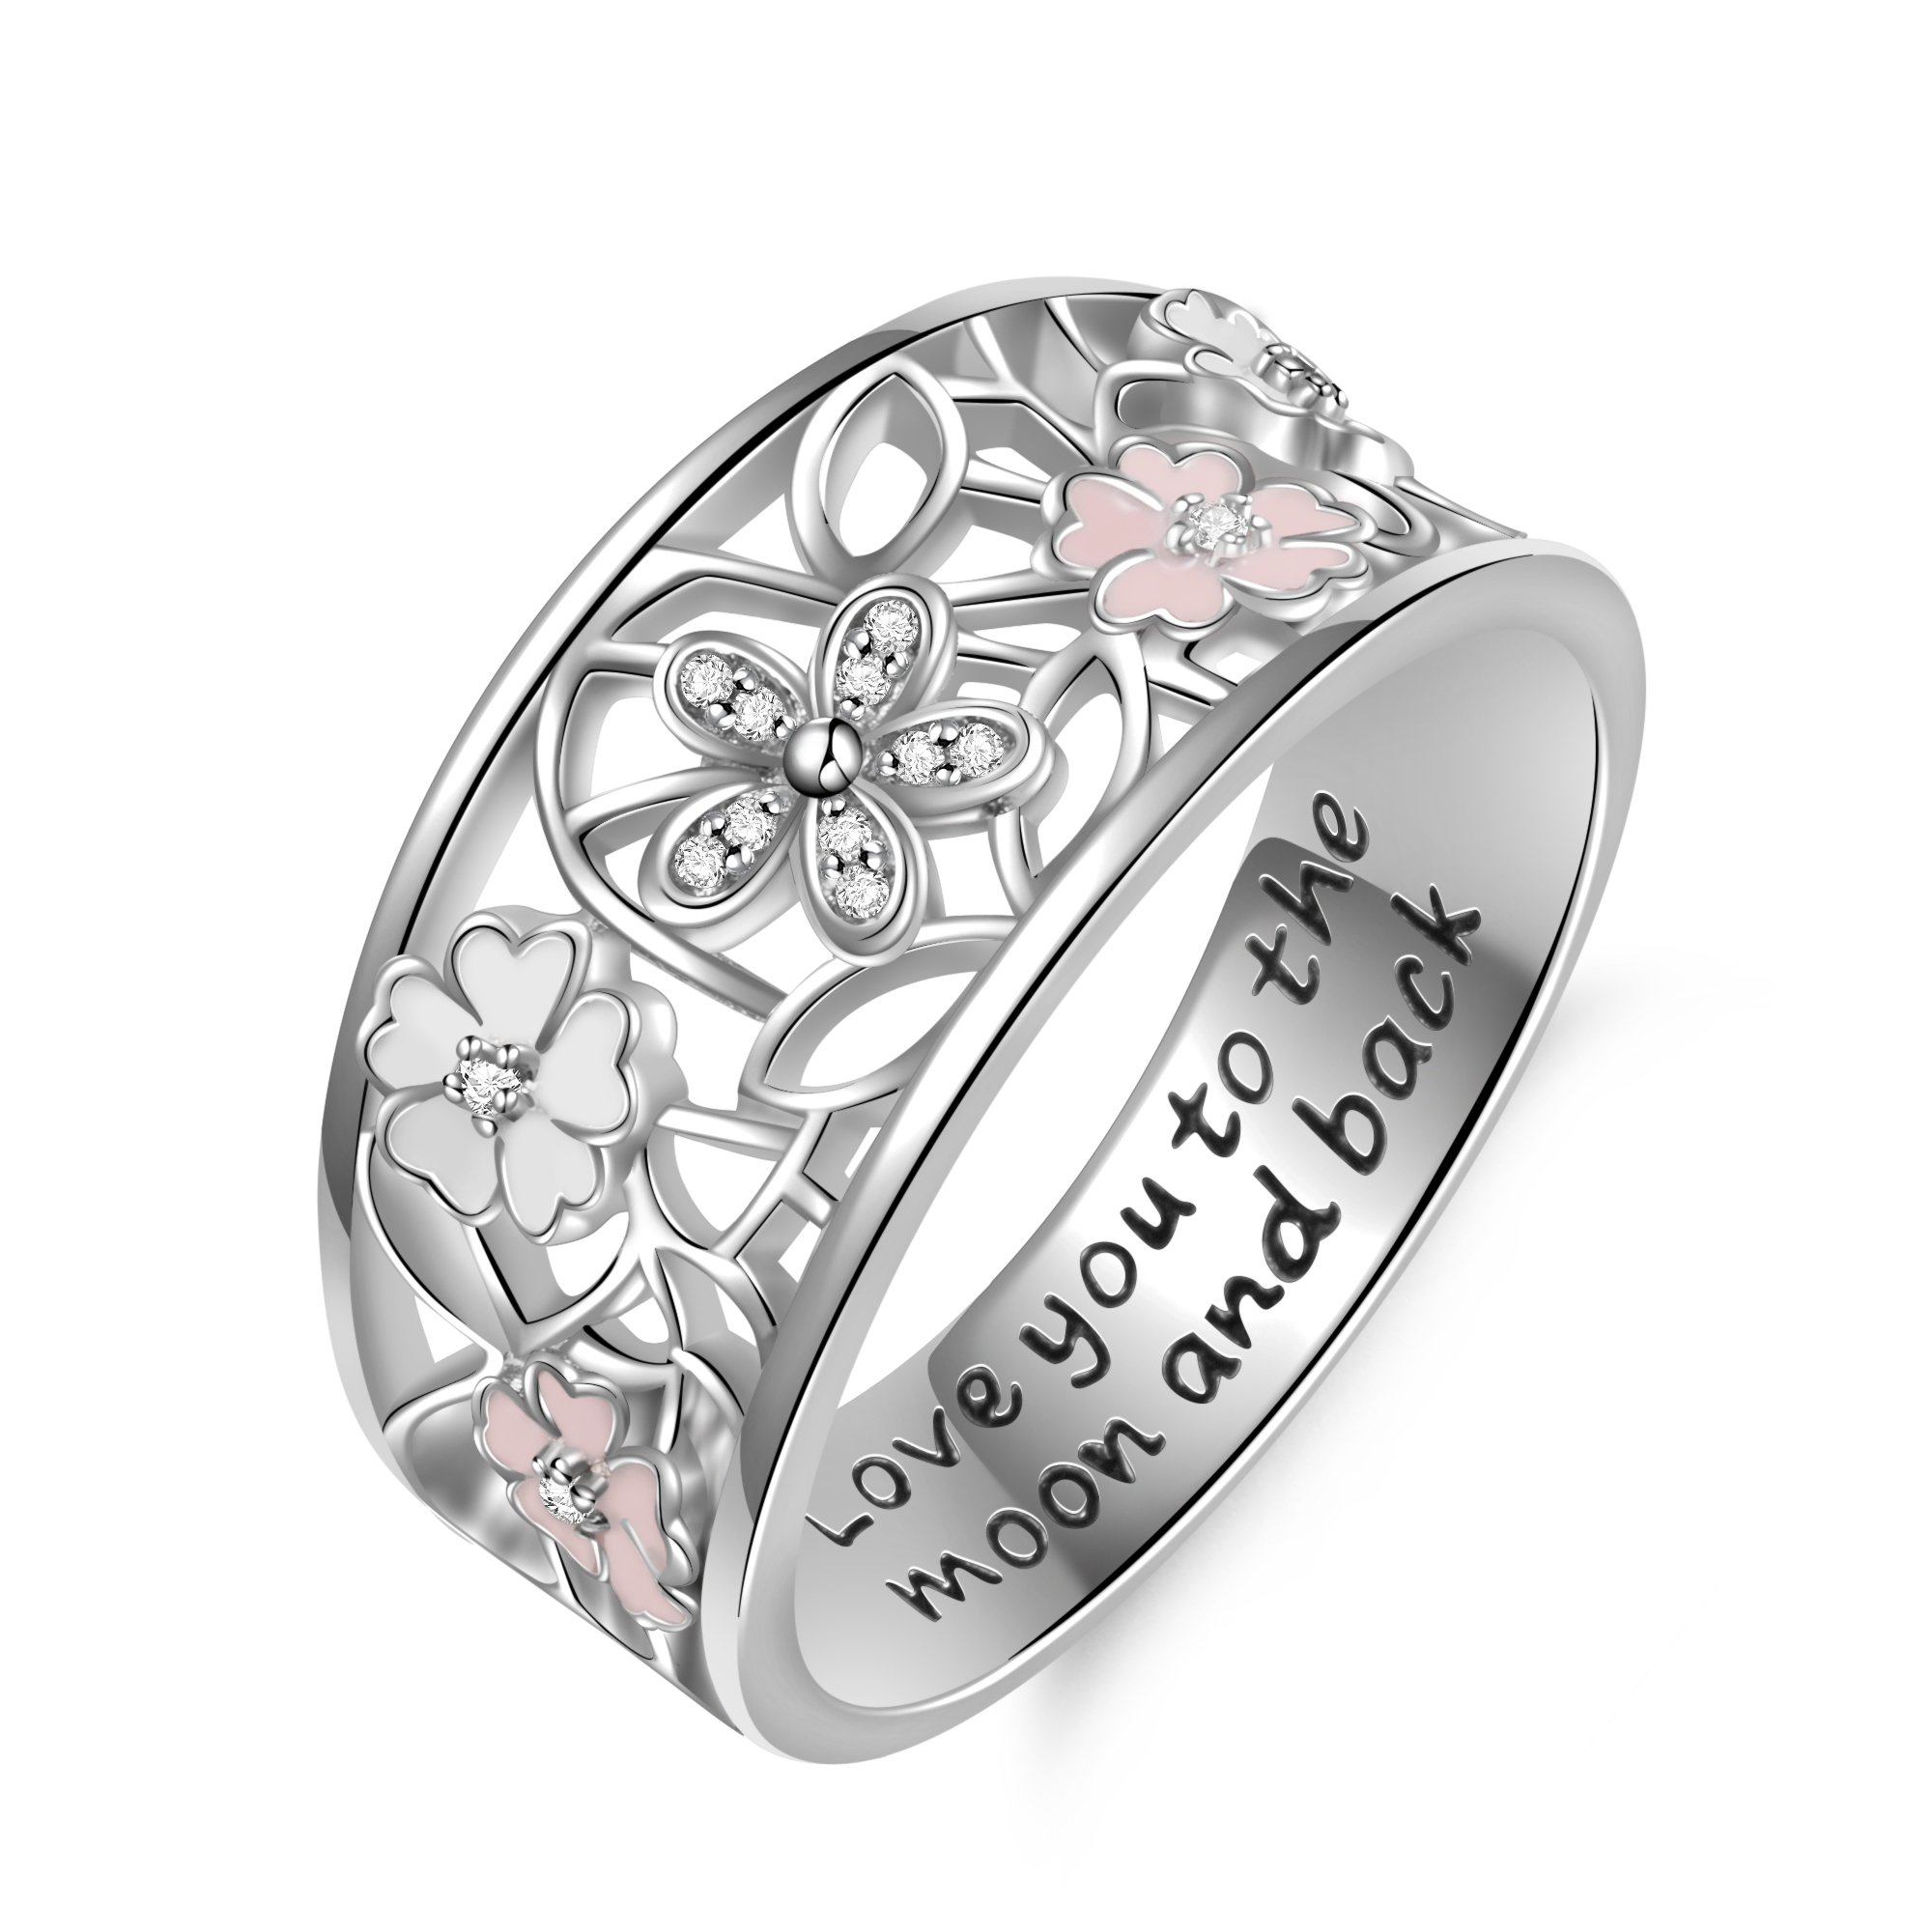 Angemiel 925 Sterling Silver Cubic Zirconia Flower Promise Ring For Women Jewelry Family Friend Love (9)